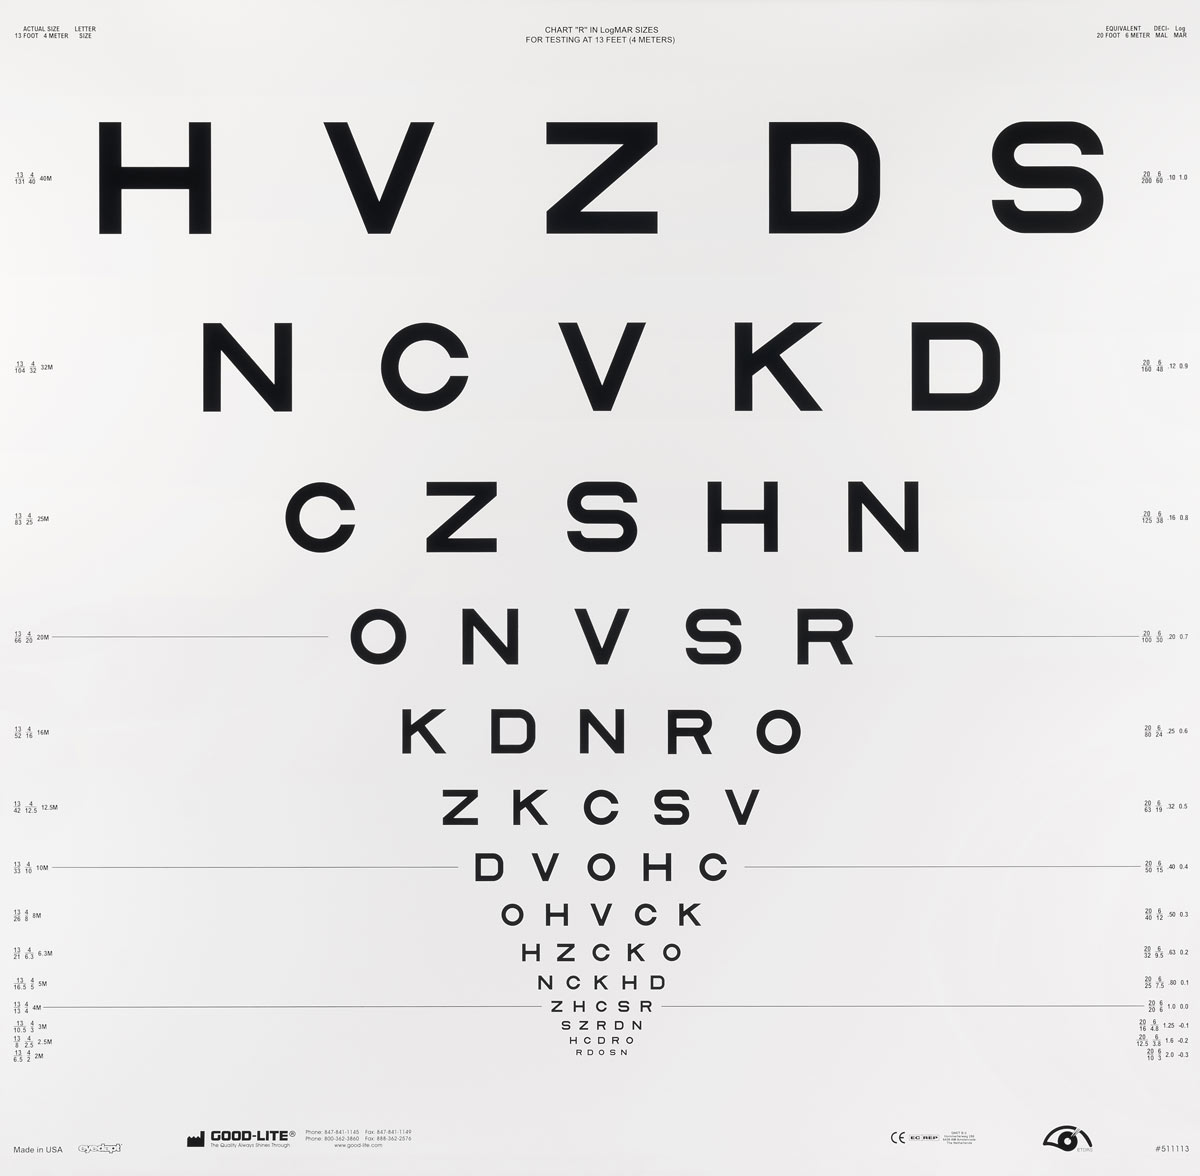 This is a picture of Printable Snellen Charts pertaining to eye test